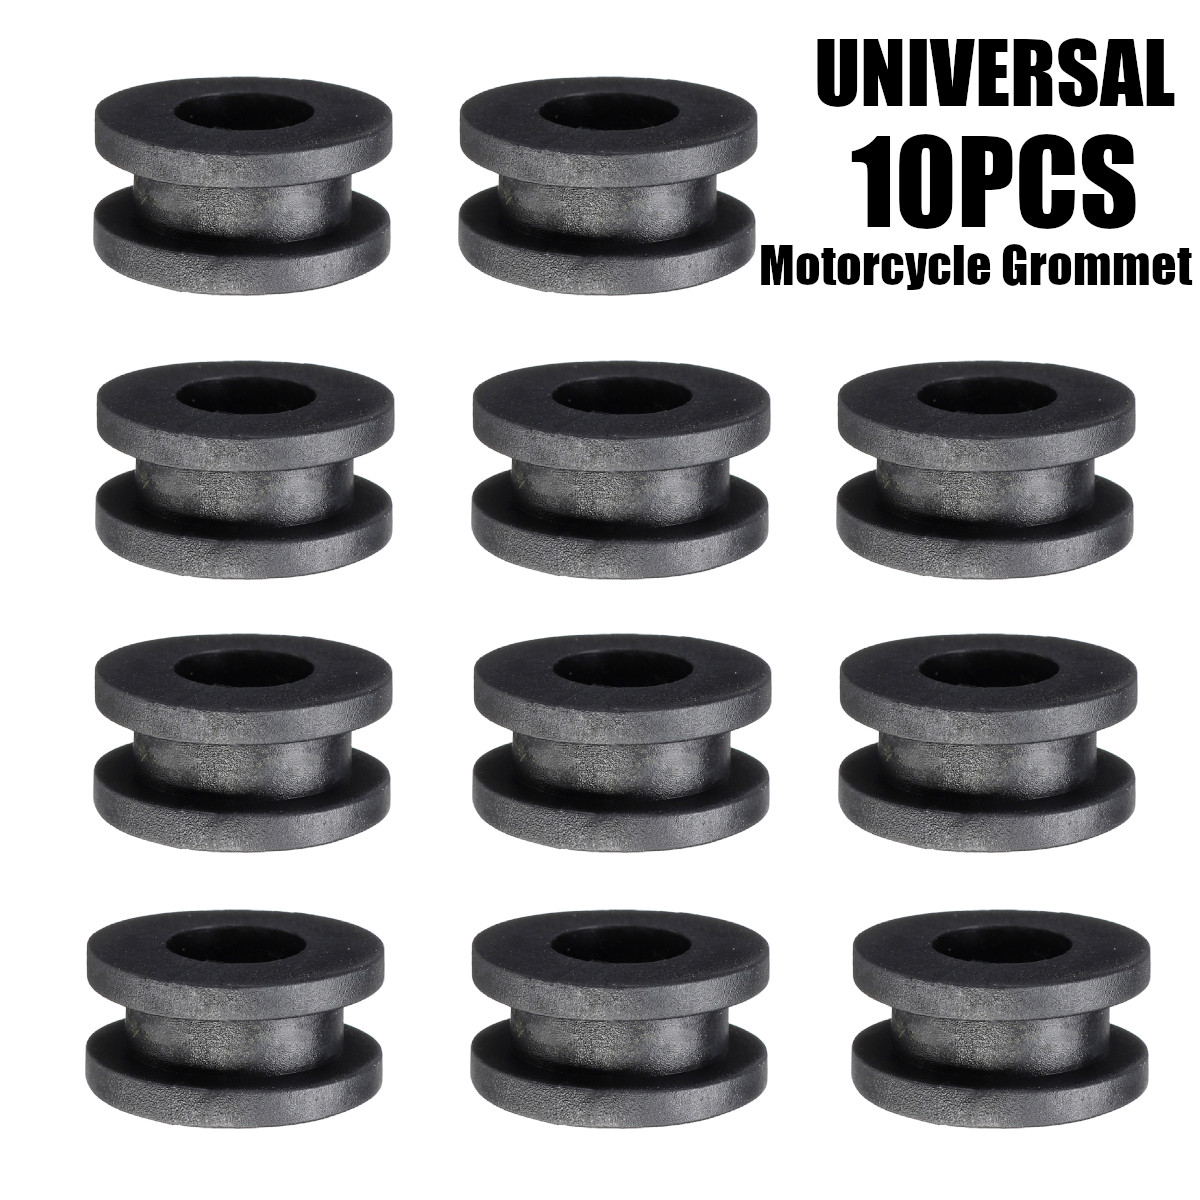 10Pcs Motorcycle Side Cover Rubber Grommets Gasket Fairings For Yamaha For Honda For Kawasaki For Suzuki CBR GSXR Ninja ZX YZF(China)